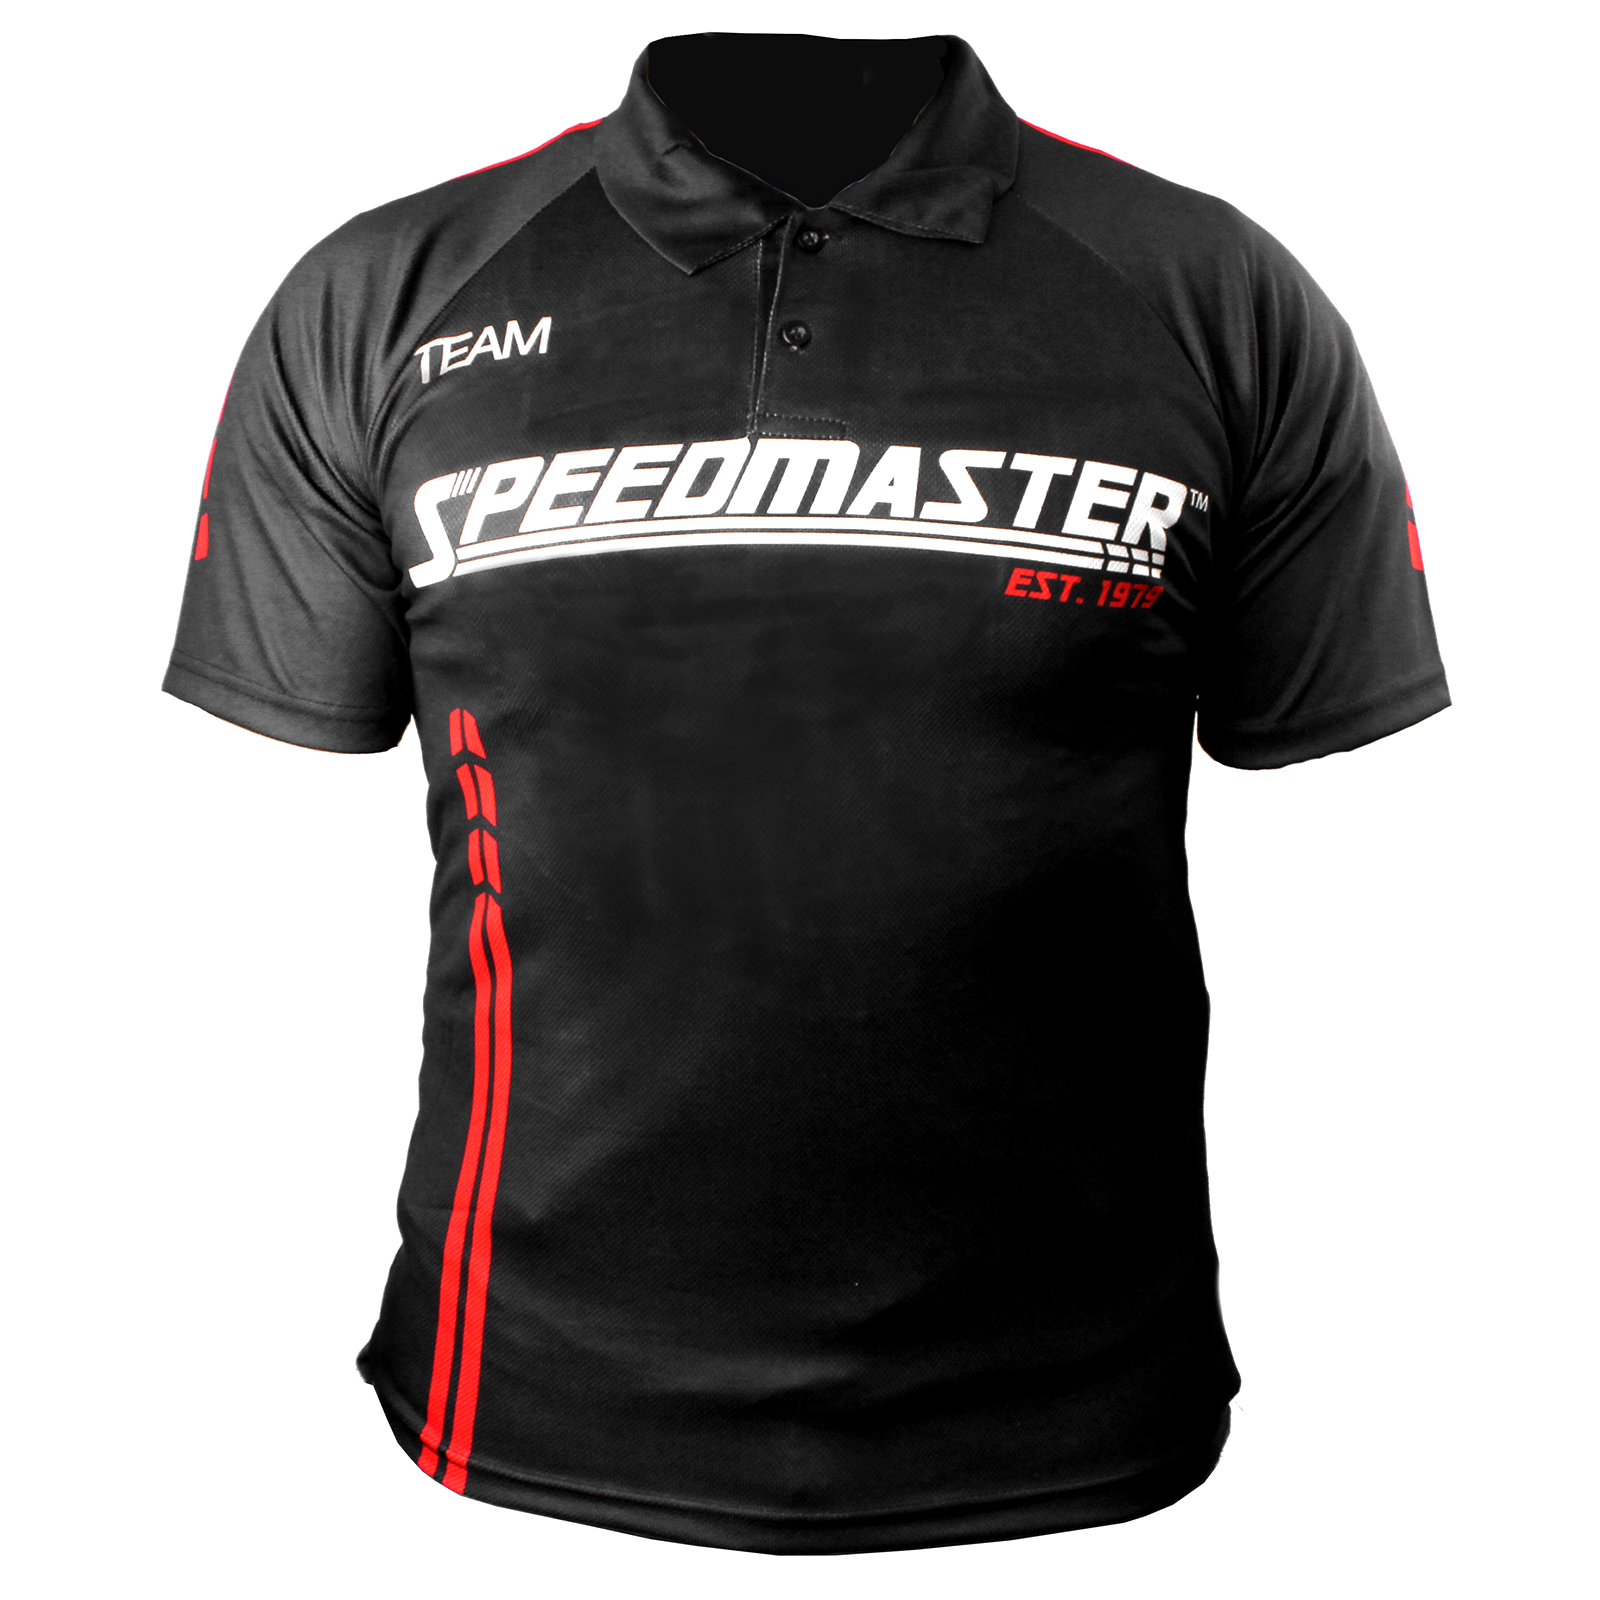 Speedmaster Team Jersey / Polo Shirt - Medium M